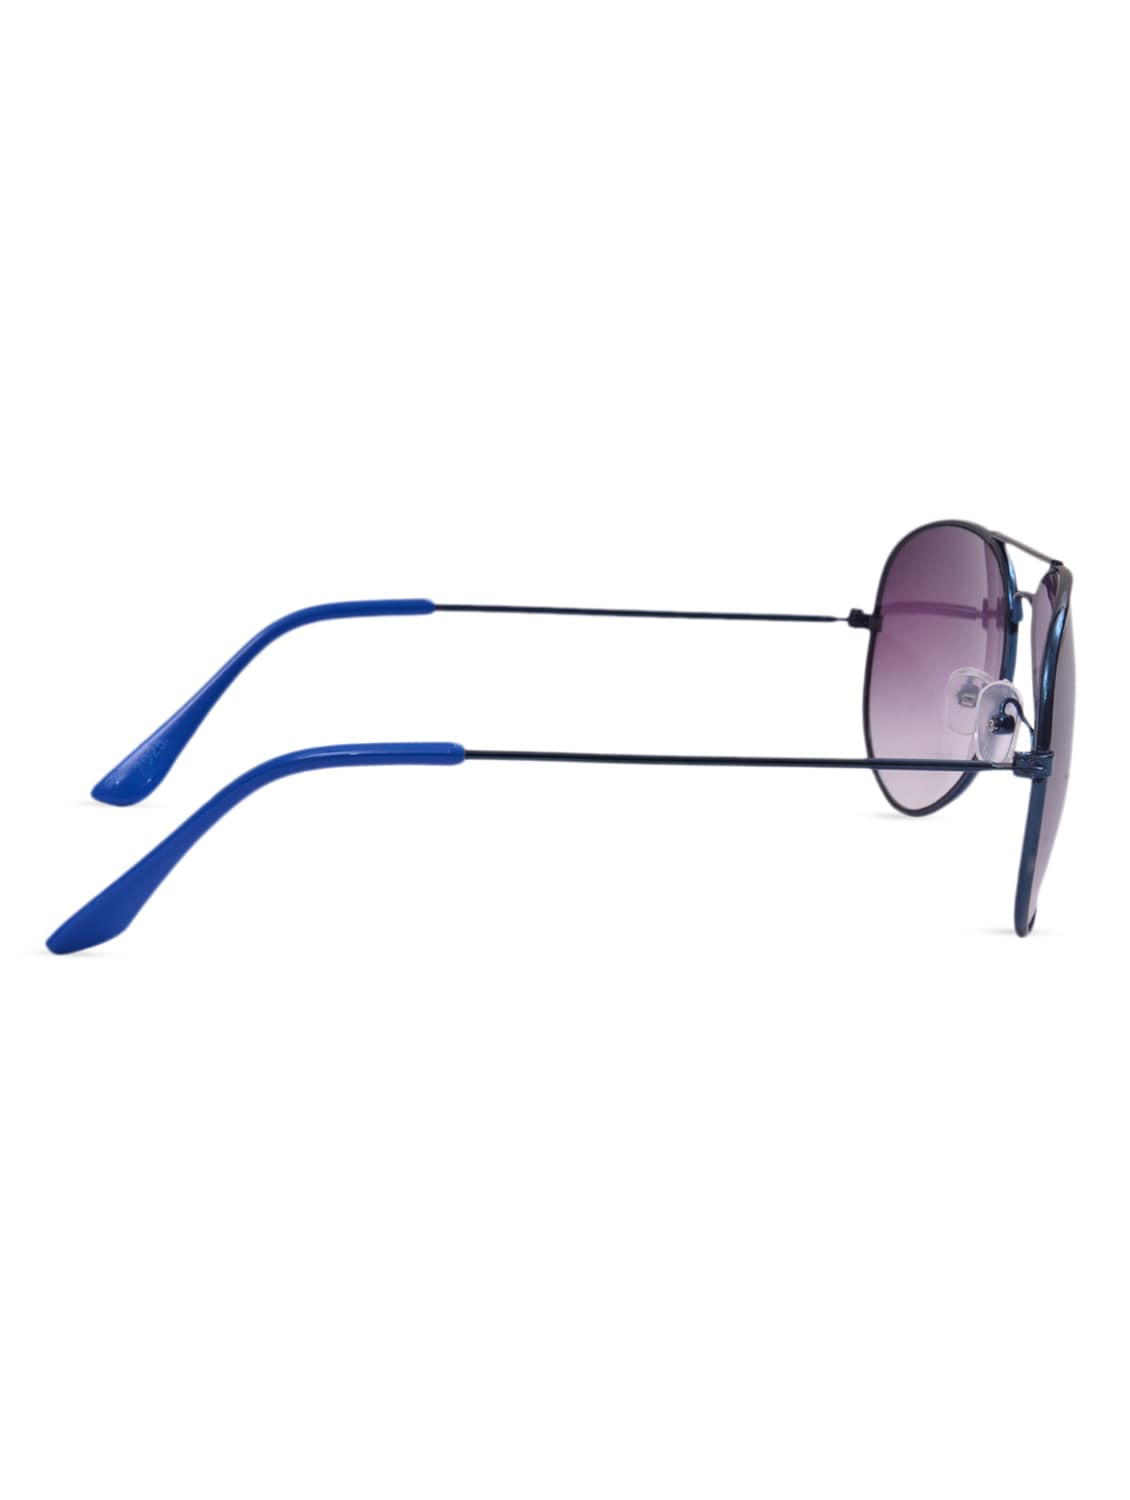 3dea3b956c Buy Purple Lens With Blue Frame by Gypsy Sun - Online shopping for  Sunglasses in India